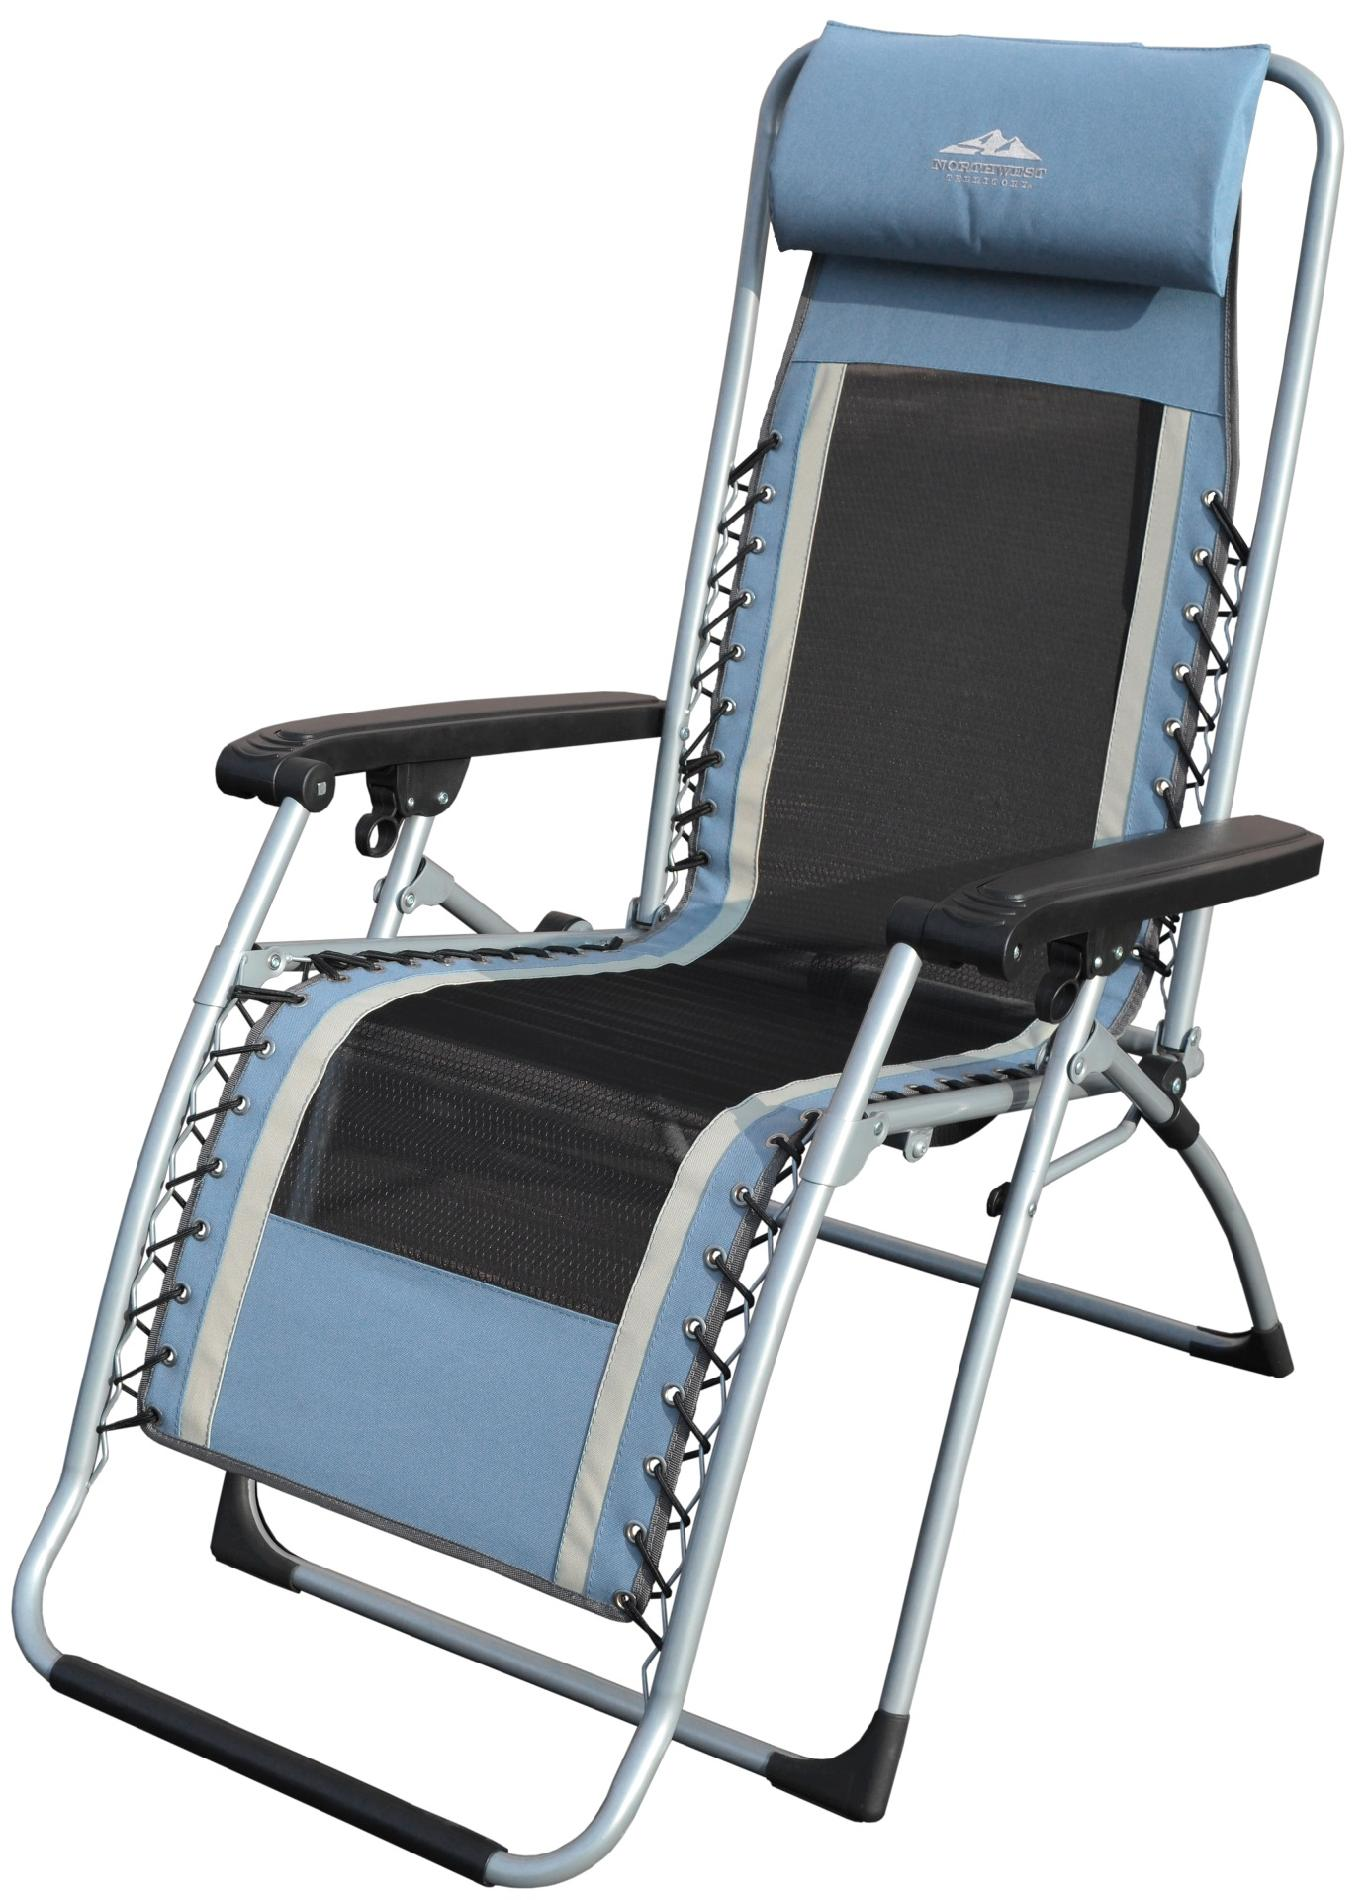 Anti Gravity Lounge Chair Northwest Territory Anti Gravity Suspension Lounger Sears